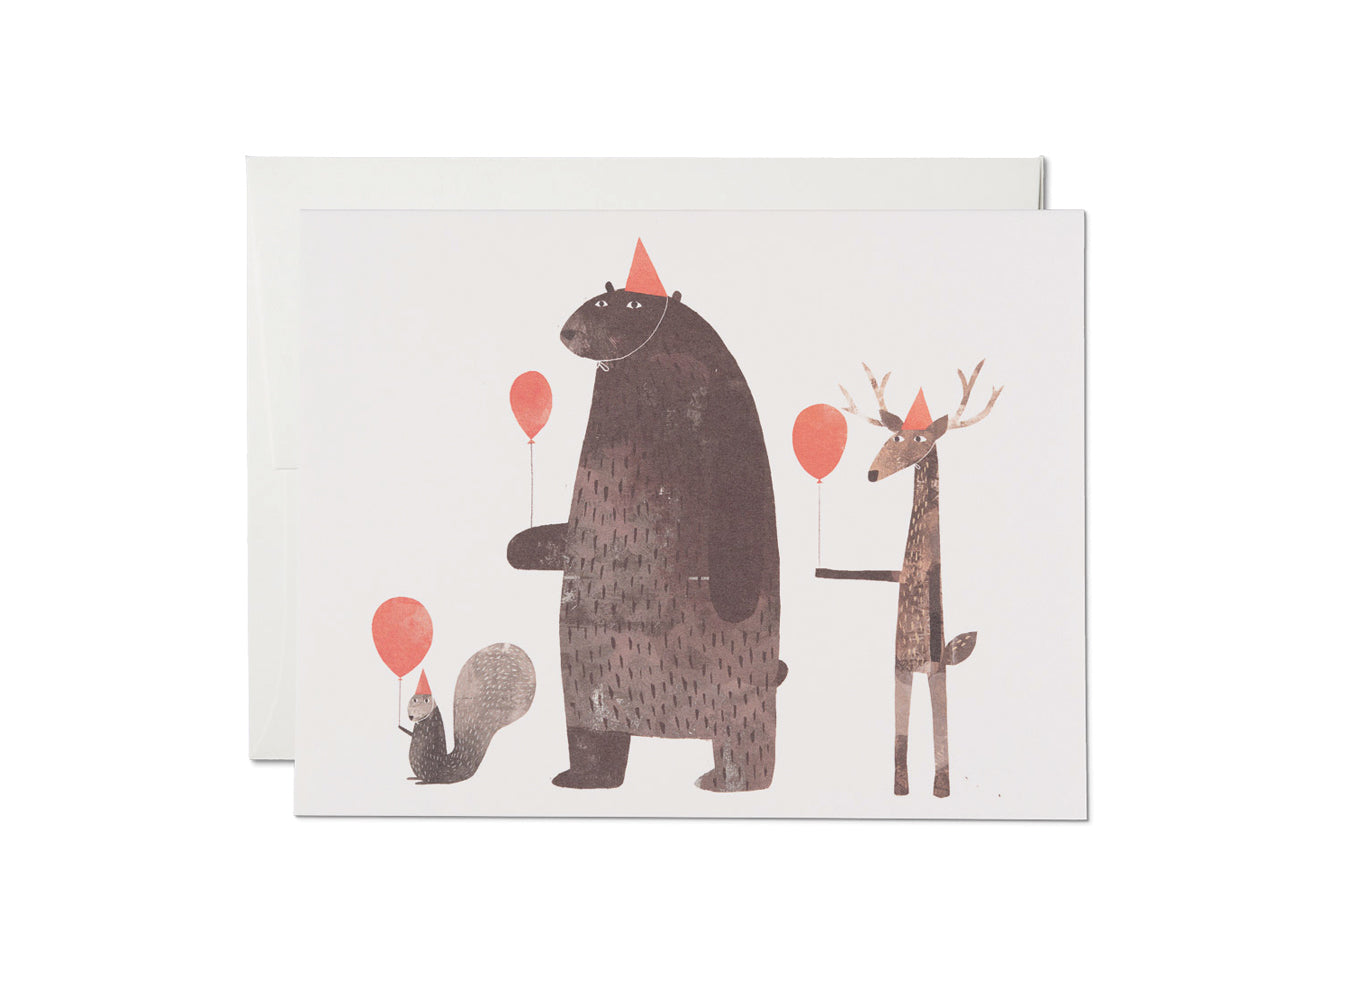 Carte - Animaux + ballons rouges